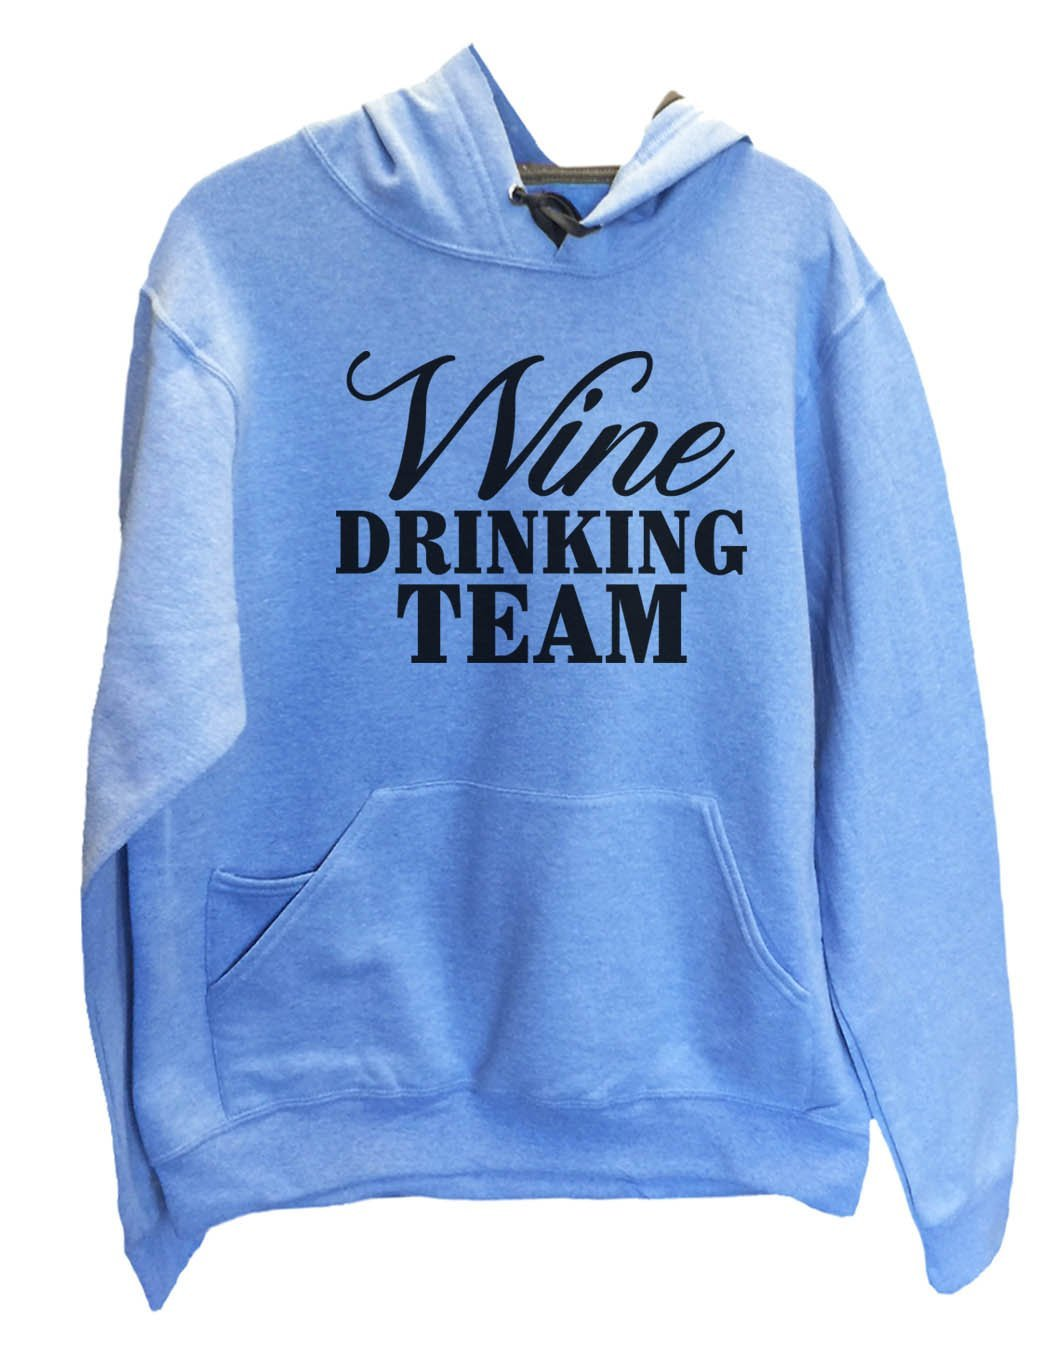 UNISEX HOODIE - Wine Drinking Team - FUNNY MENS AND WOMENS HOODED SWEATSHIRTS - 2134 Funny Shirt Small / North Carolina Blue